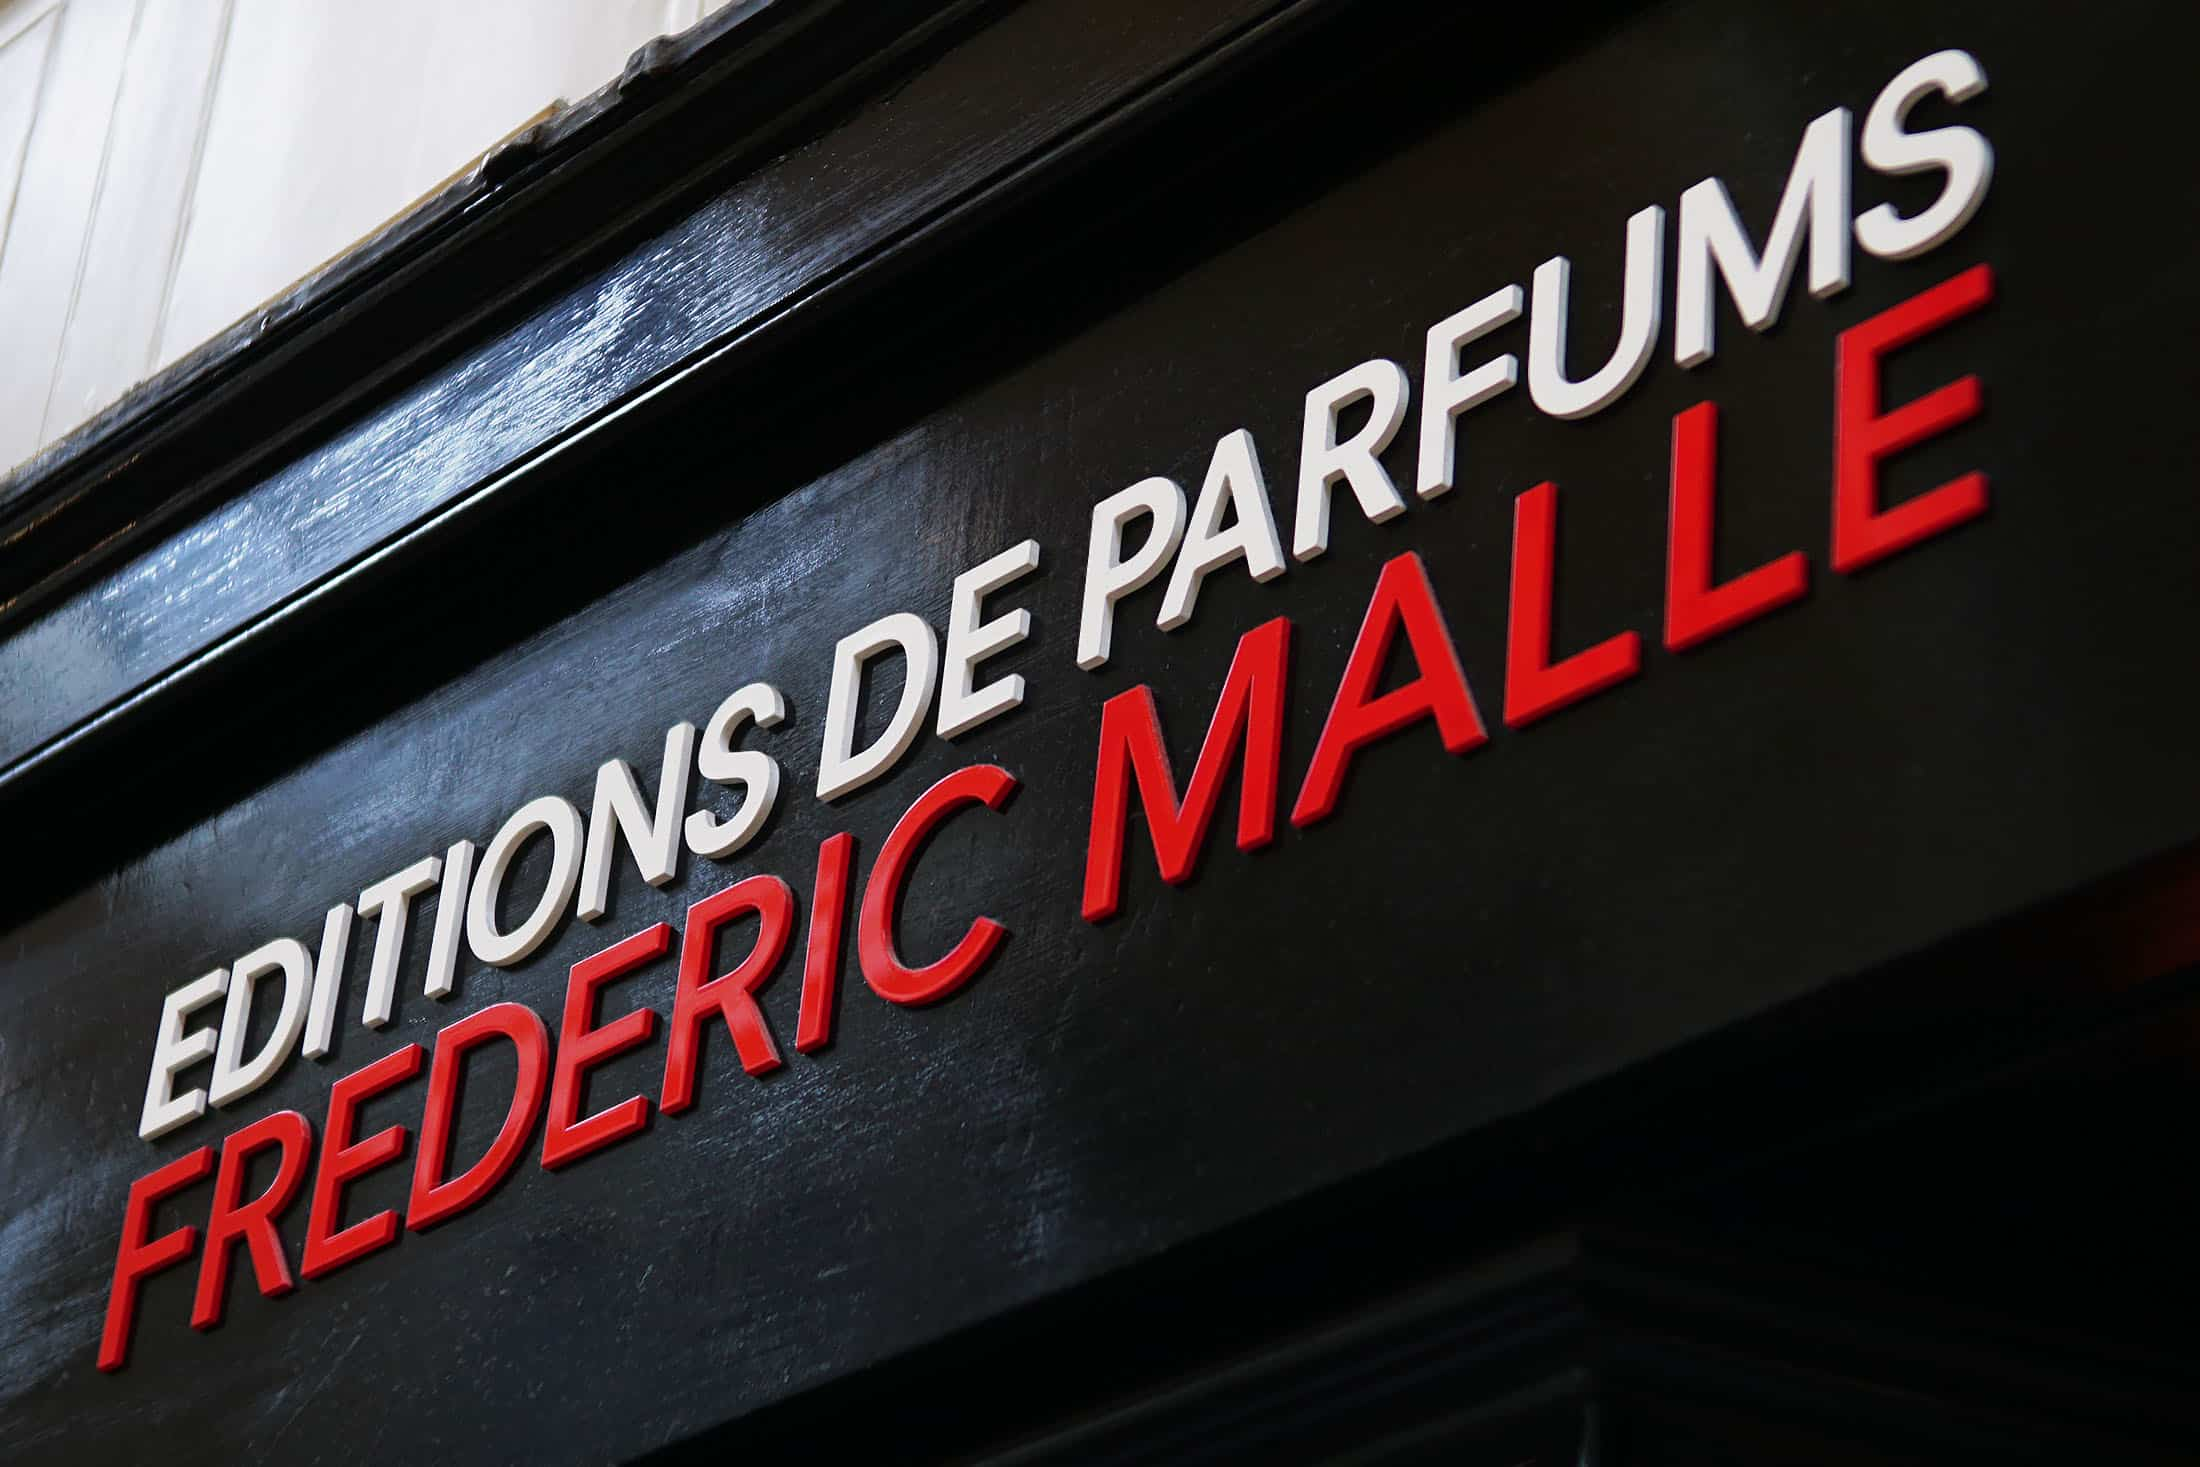 Visiting Frederic Malle Burlington Arcade Flagship Store